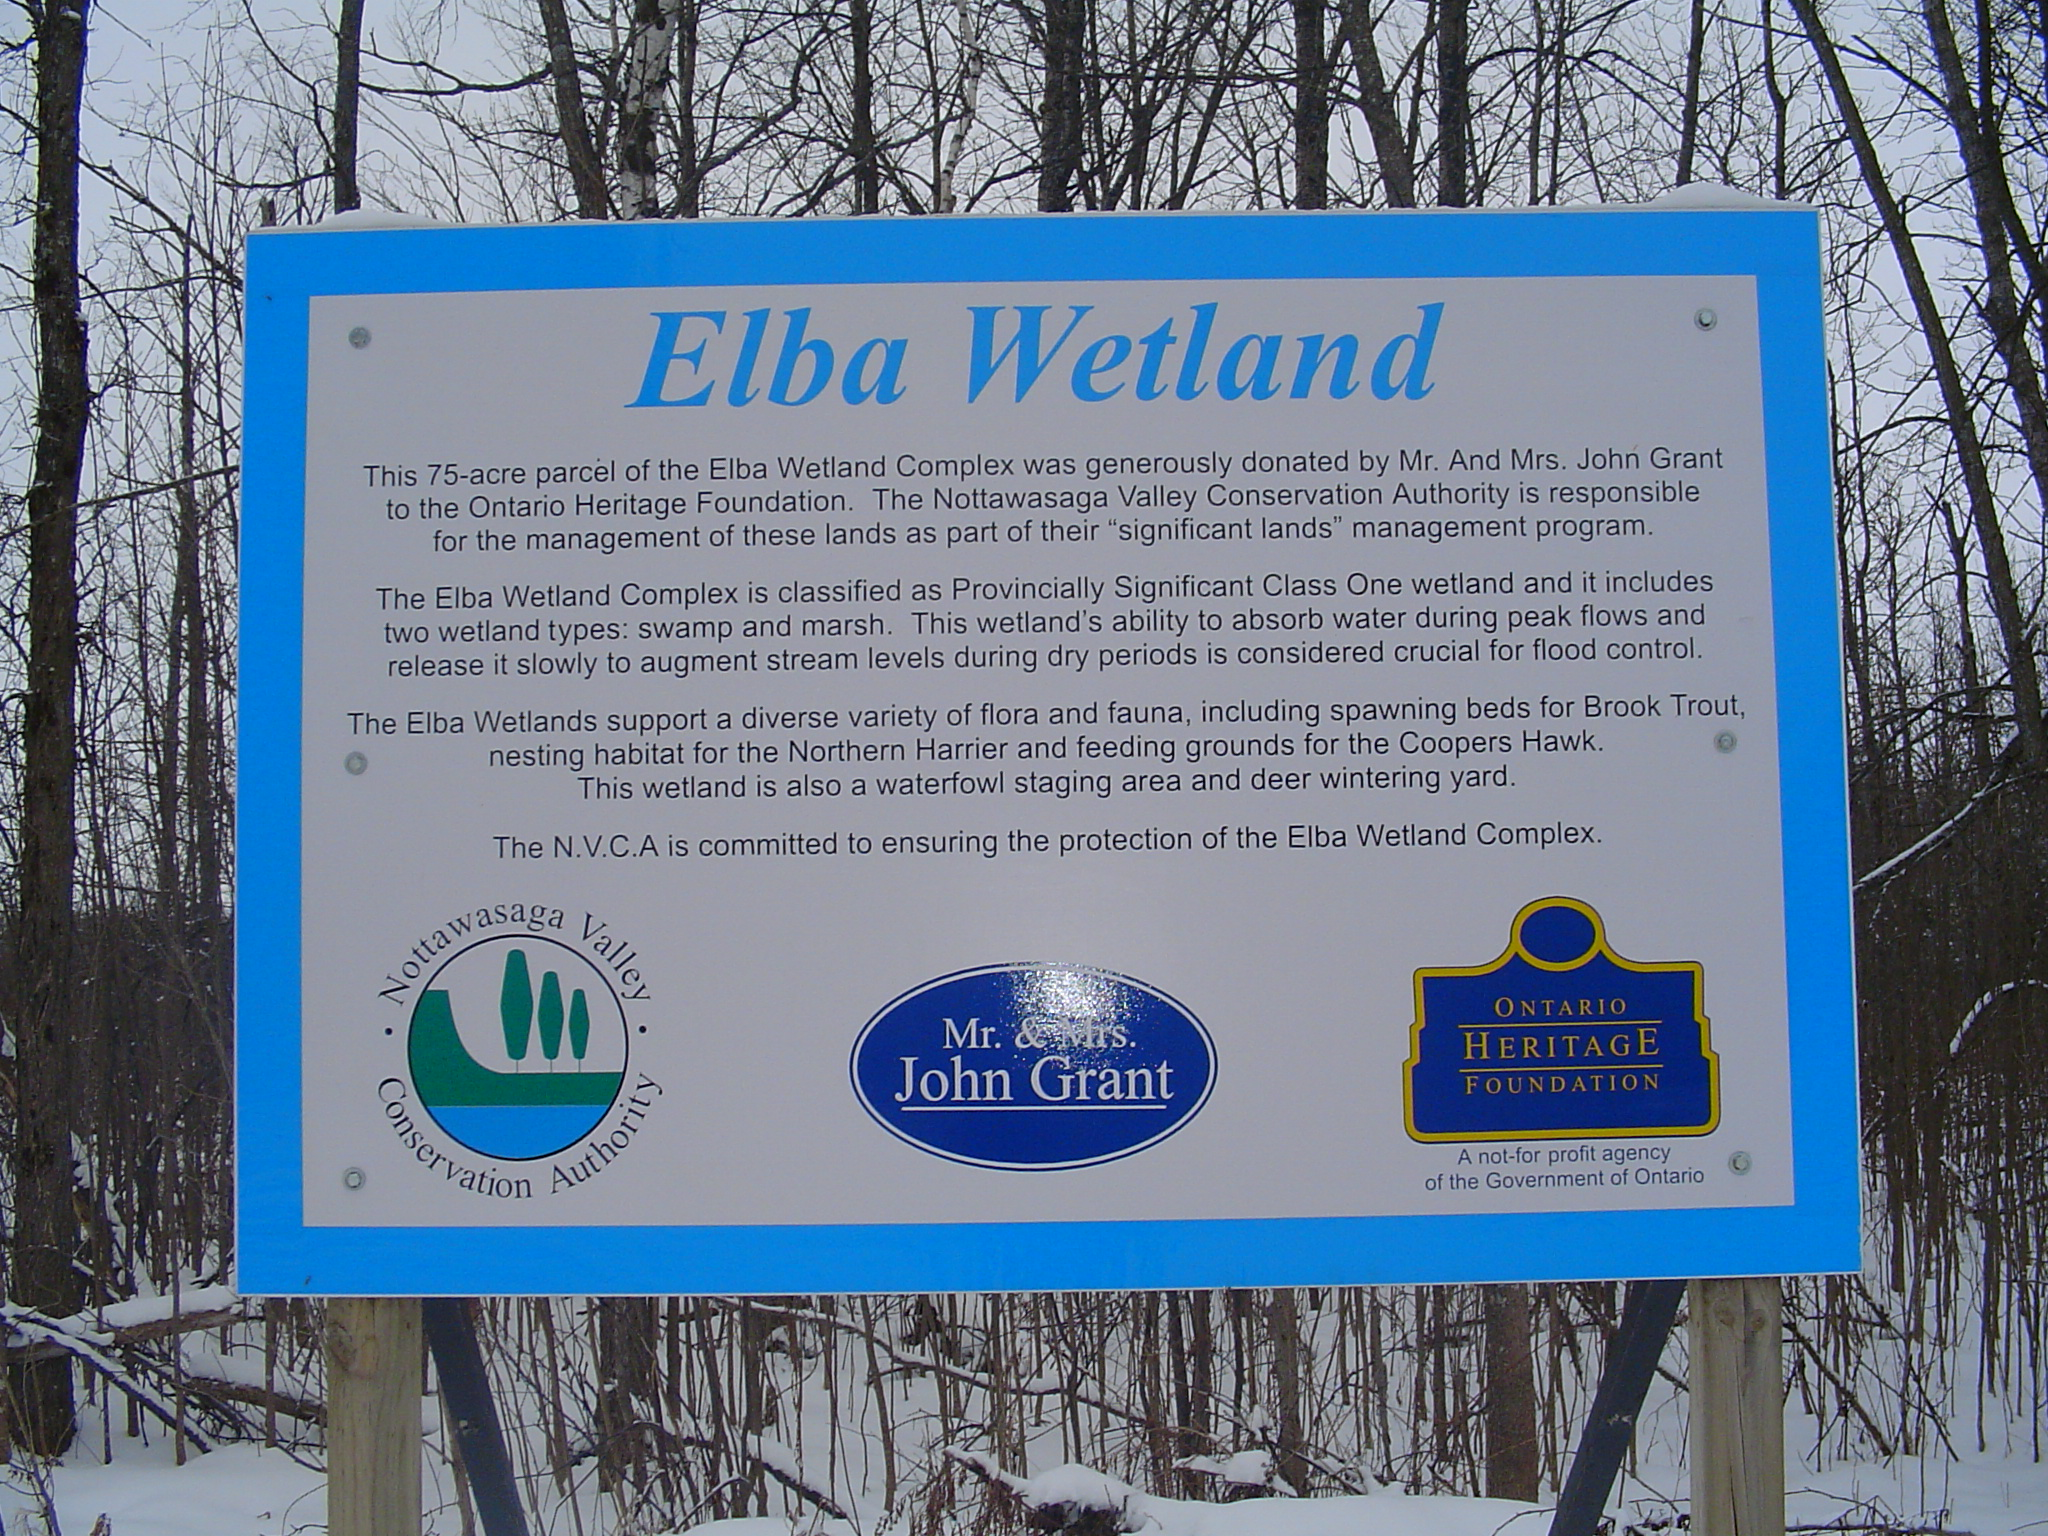 elba wetlands and glencairn signs 001.jpg